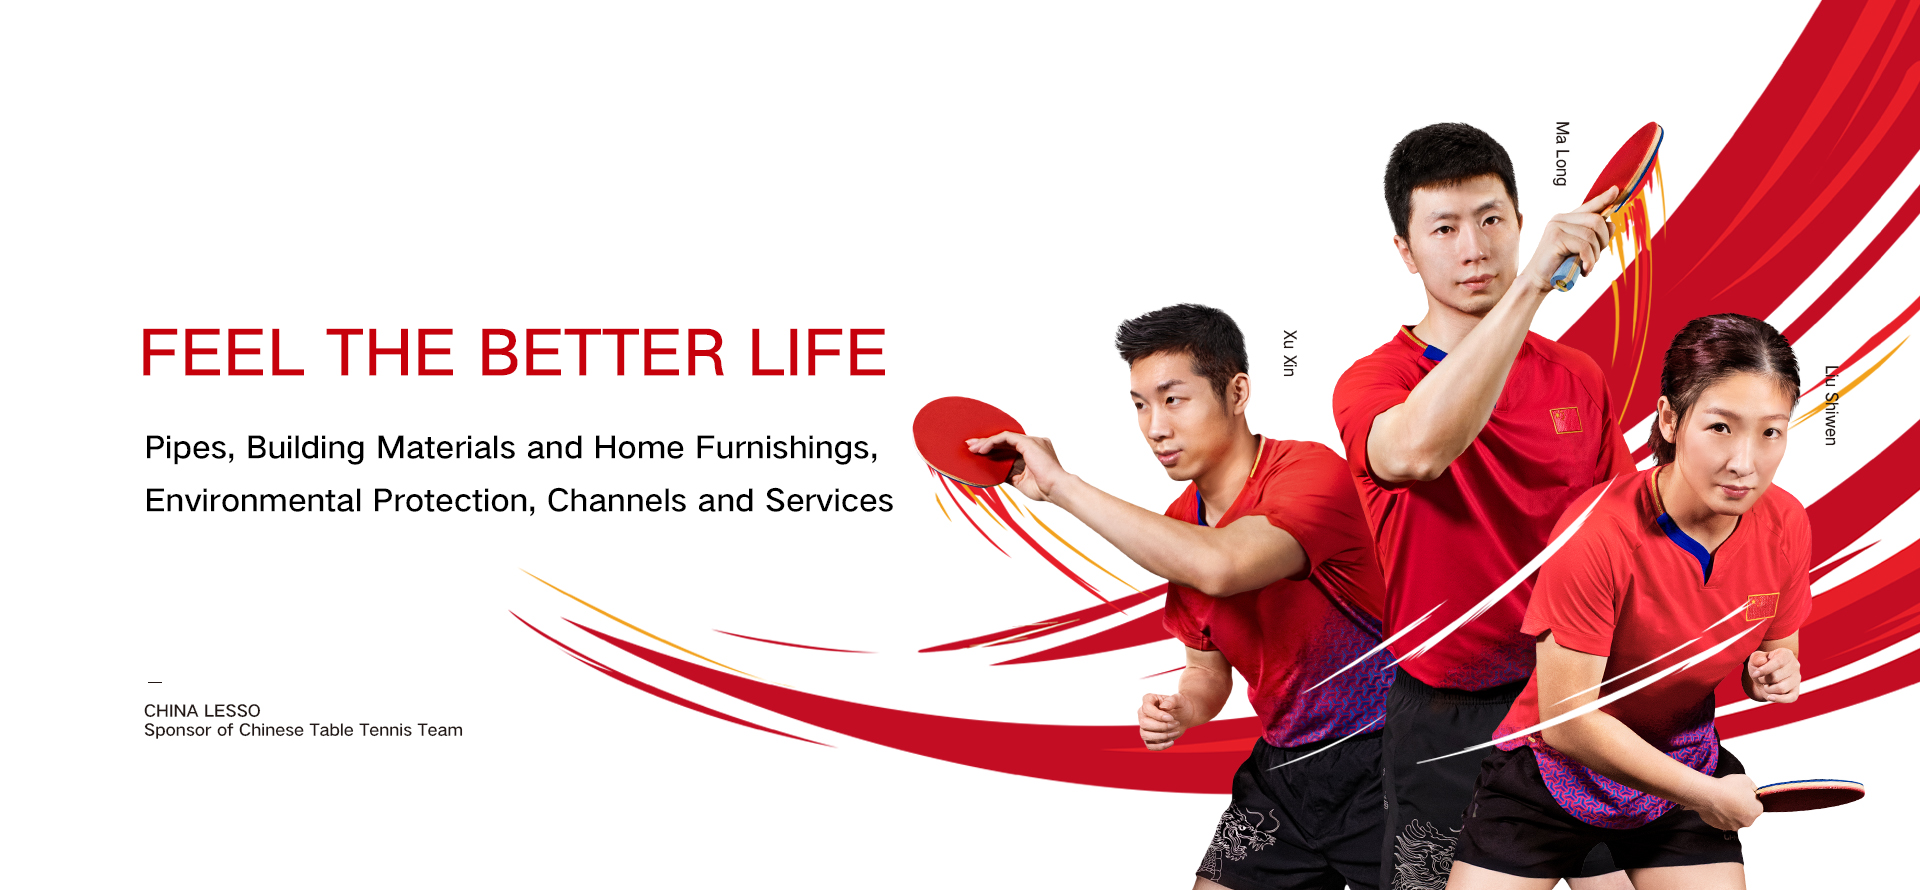 Lesso Feel the better Life- China Lesso, Sponsor of Chinese Table Tennis Team